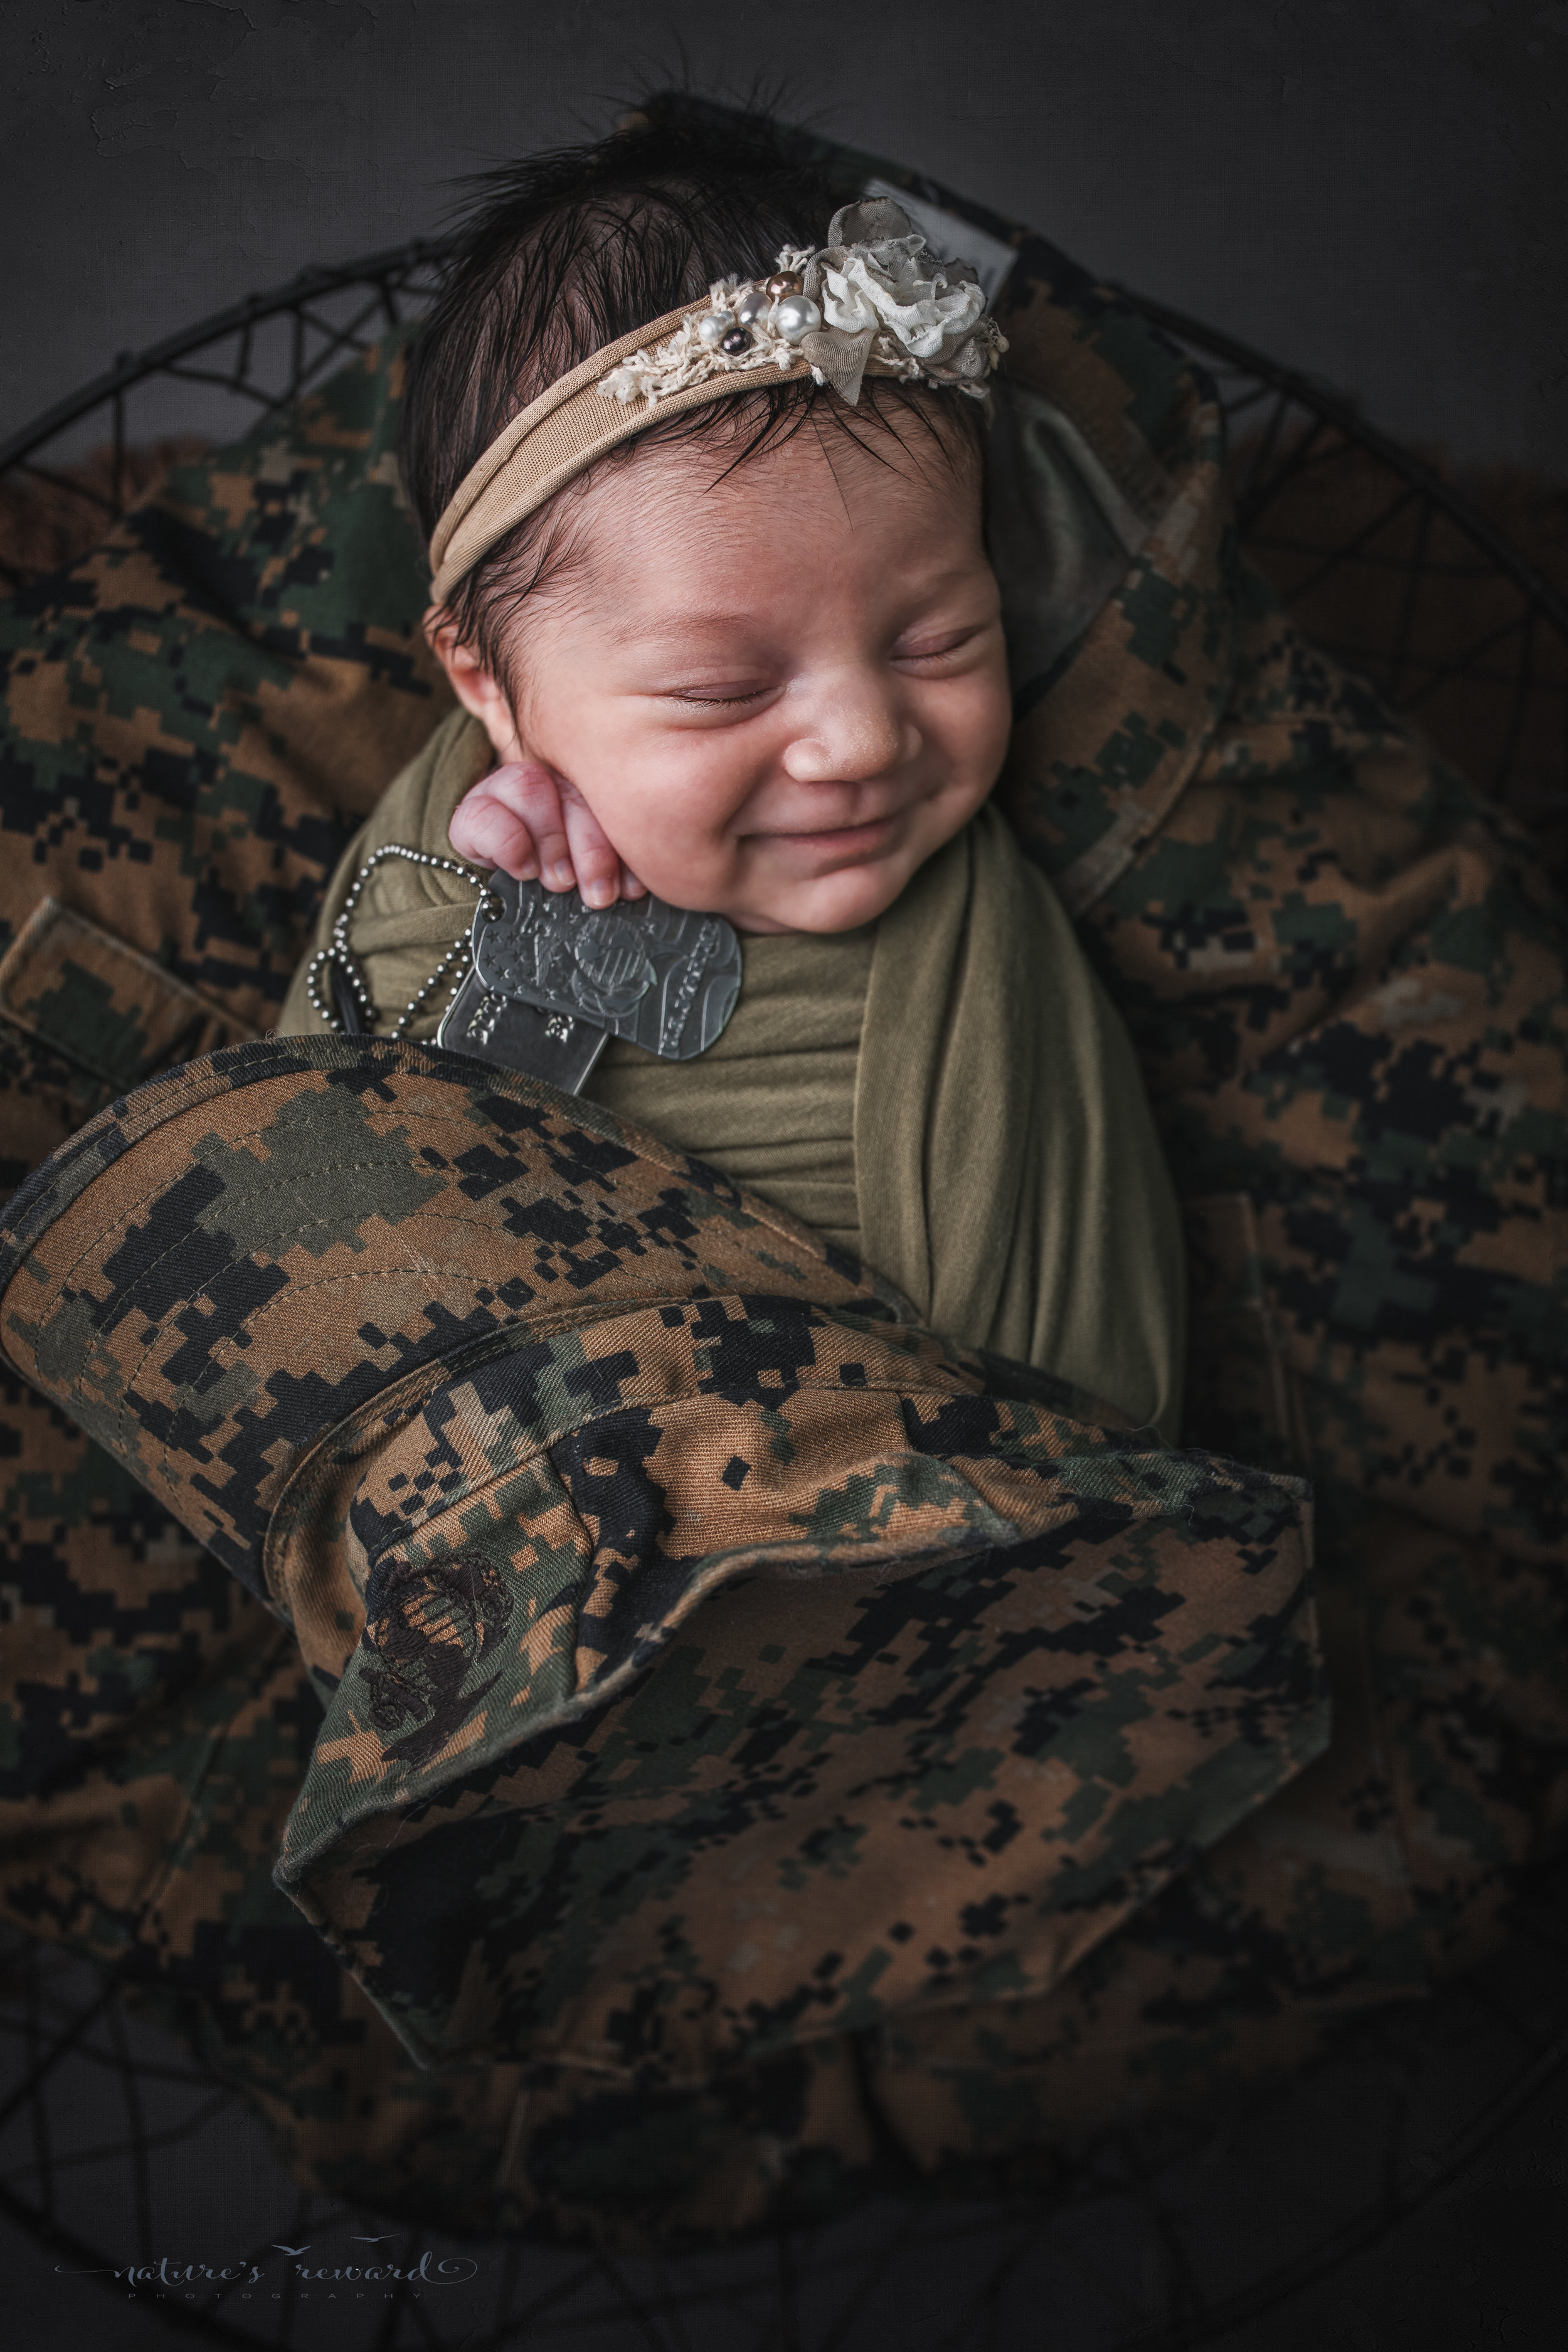 Newborn baby girl, smiling, swaddled in army green laying on her father's service uniform with his dog tags, a portrait by Nature's Reward Photography